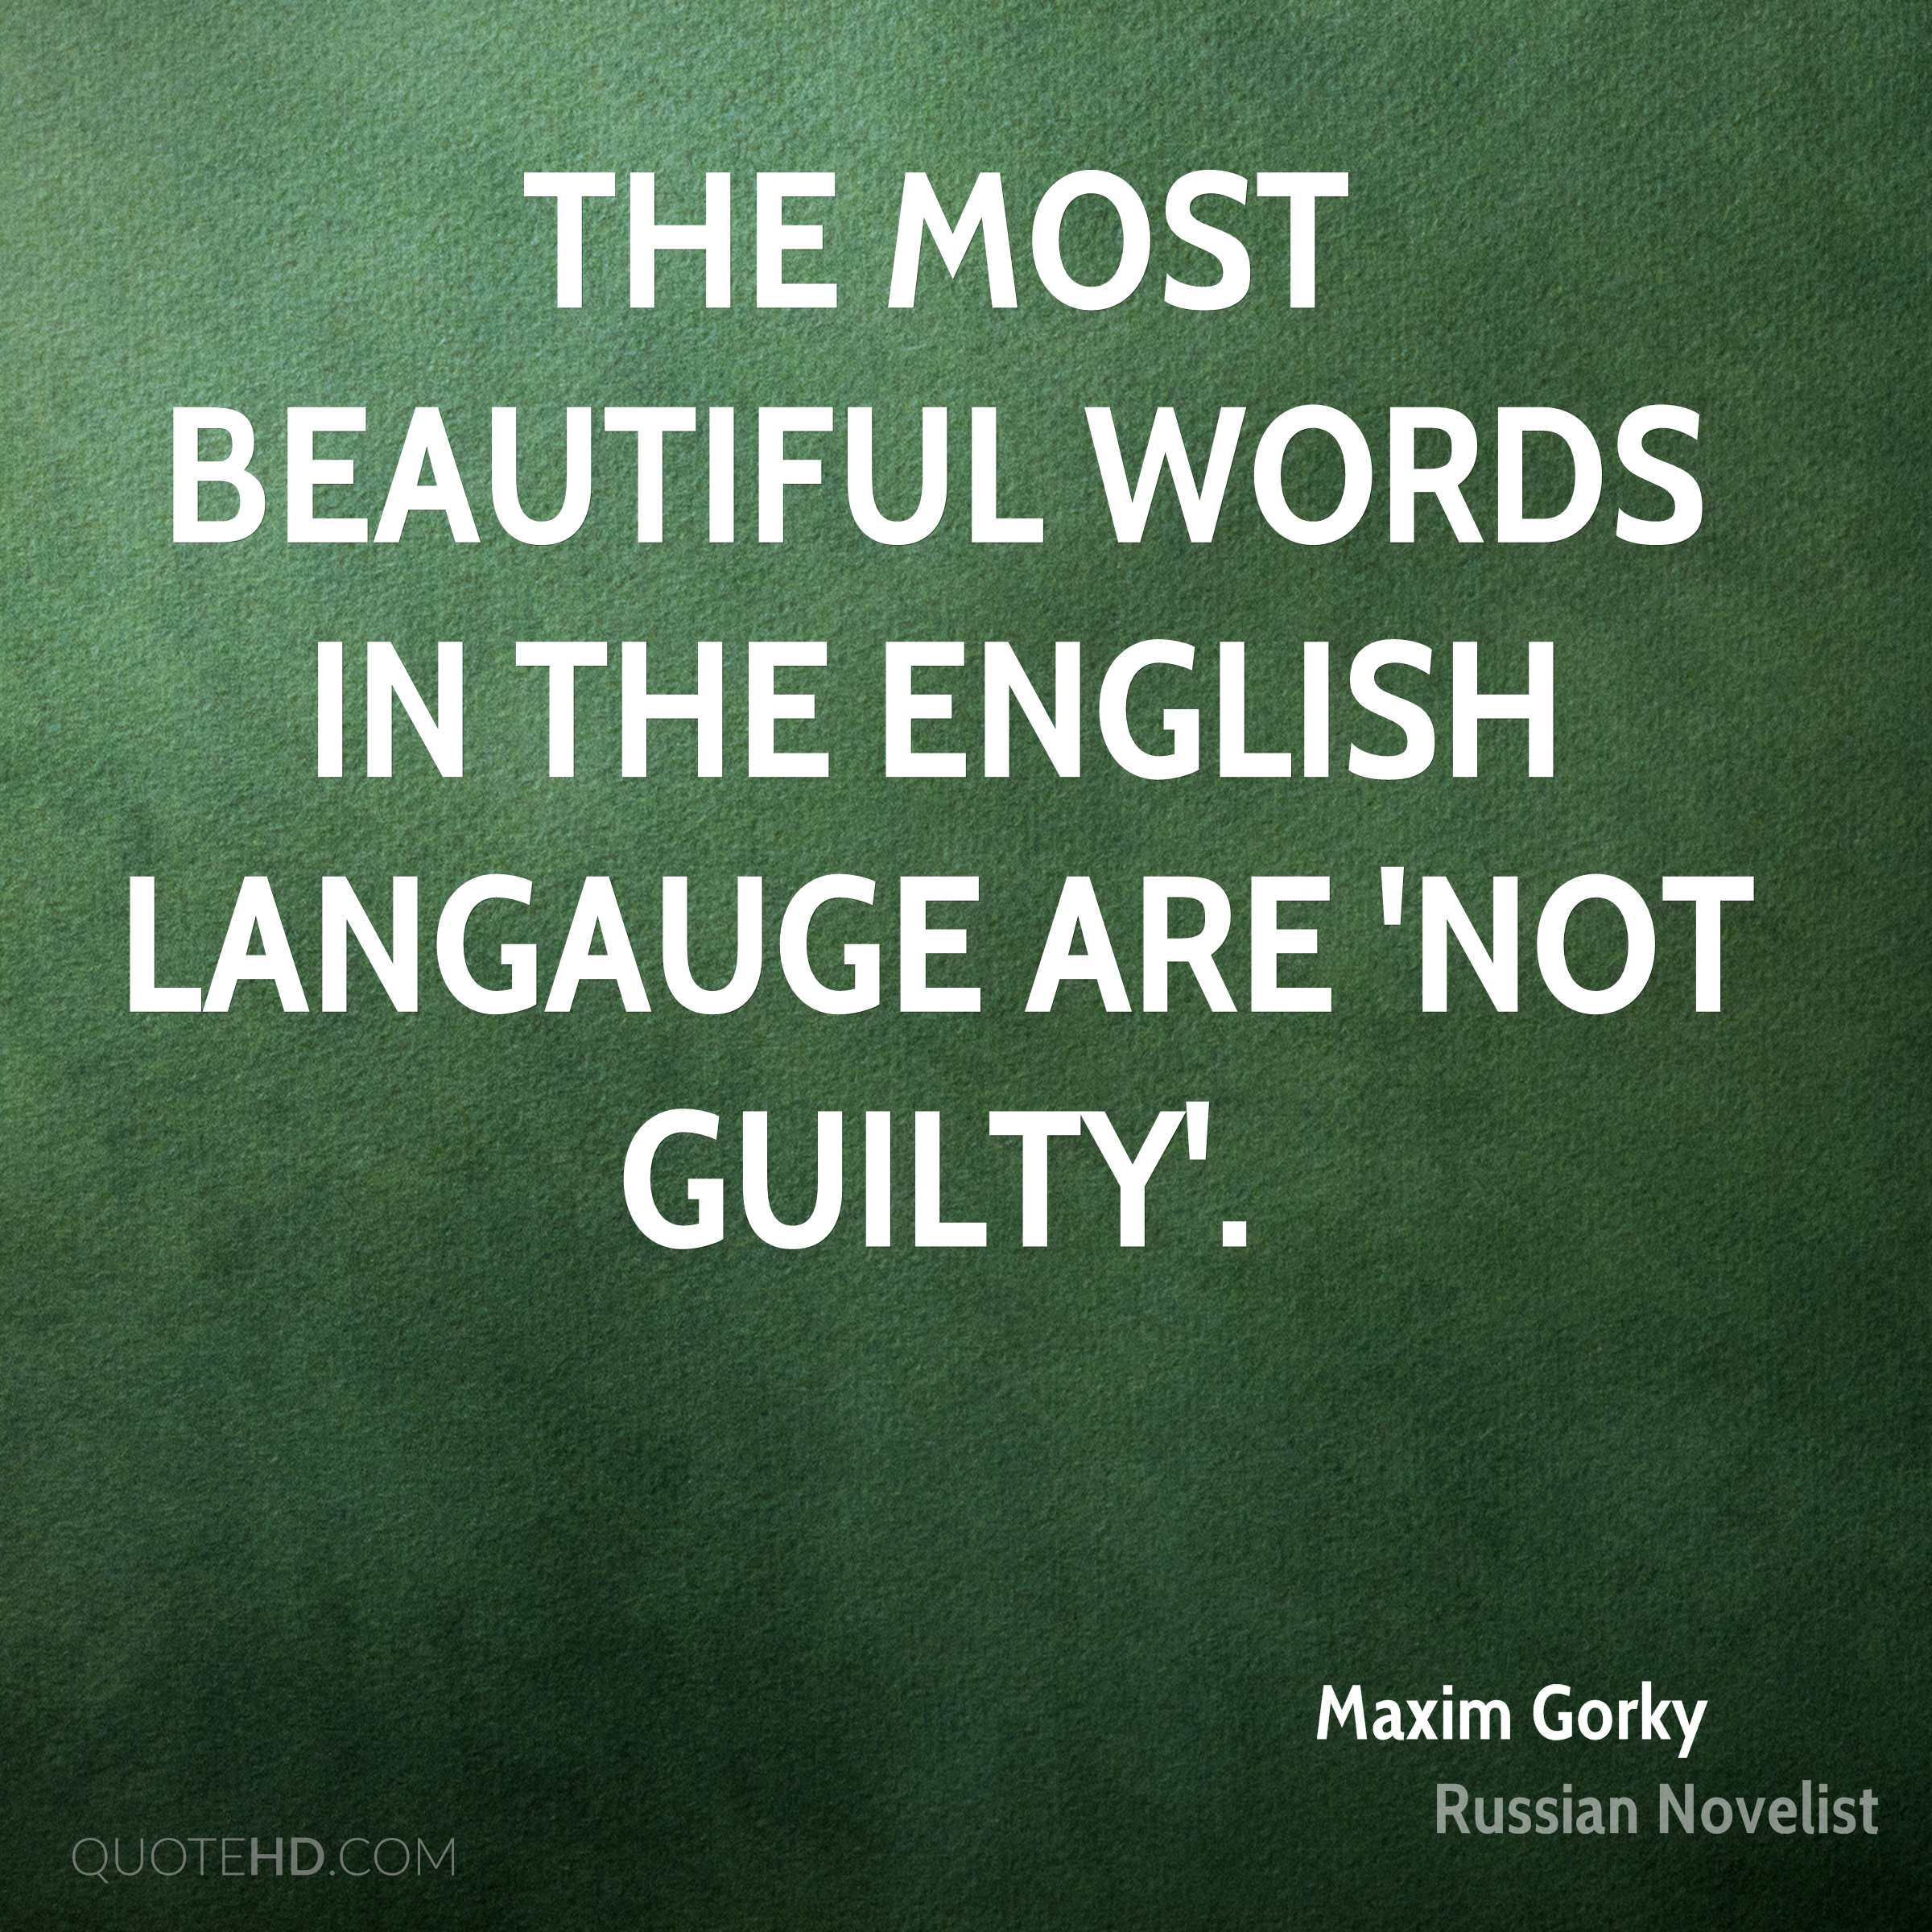 The most beautiful words in the English langauge are 'not guilty'.